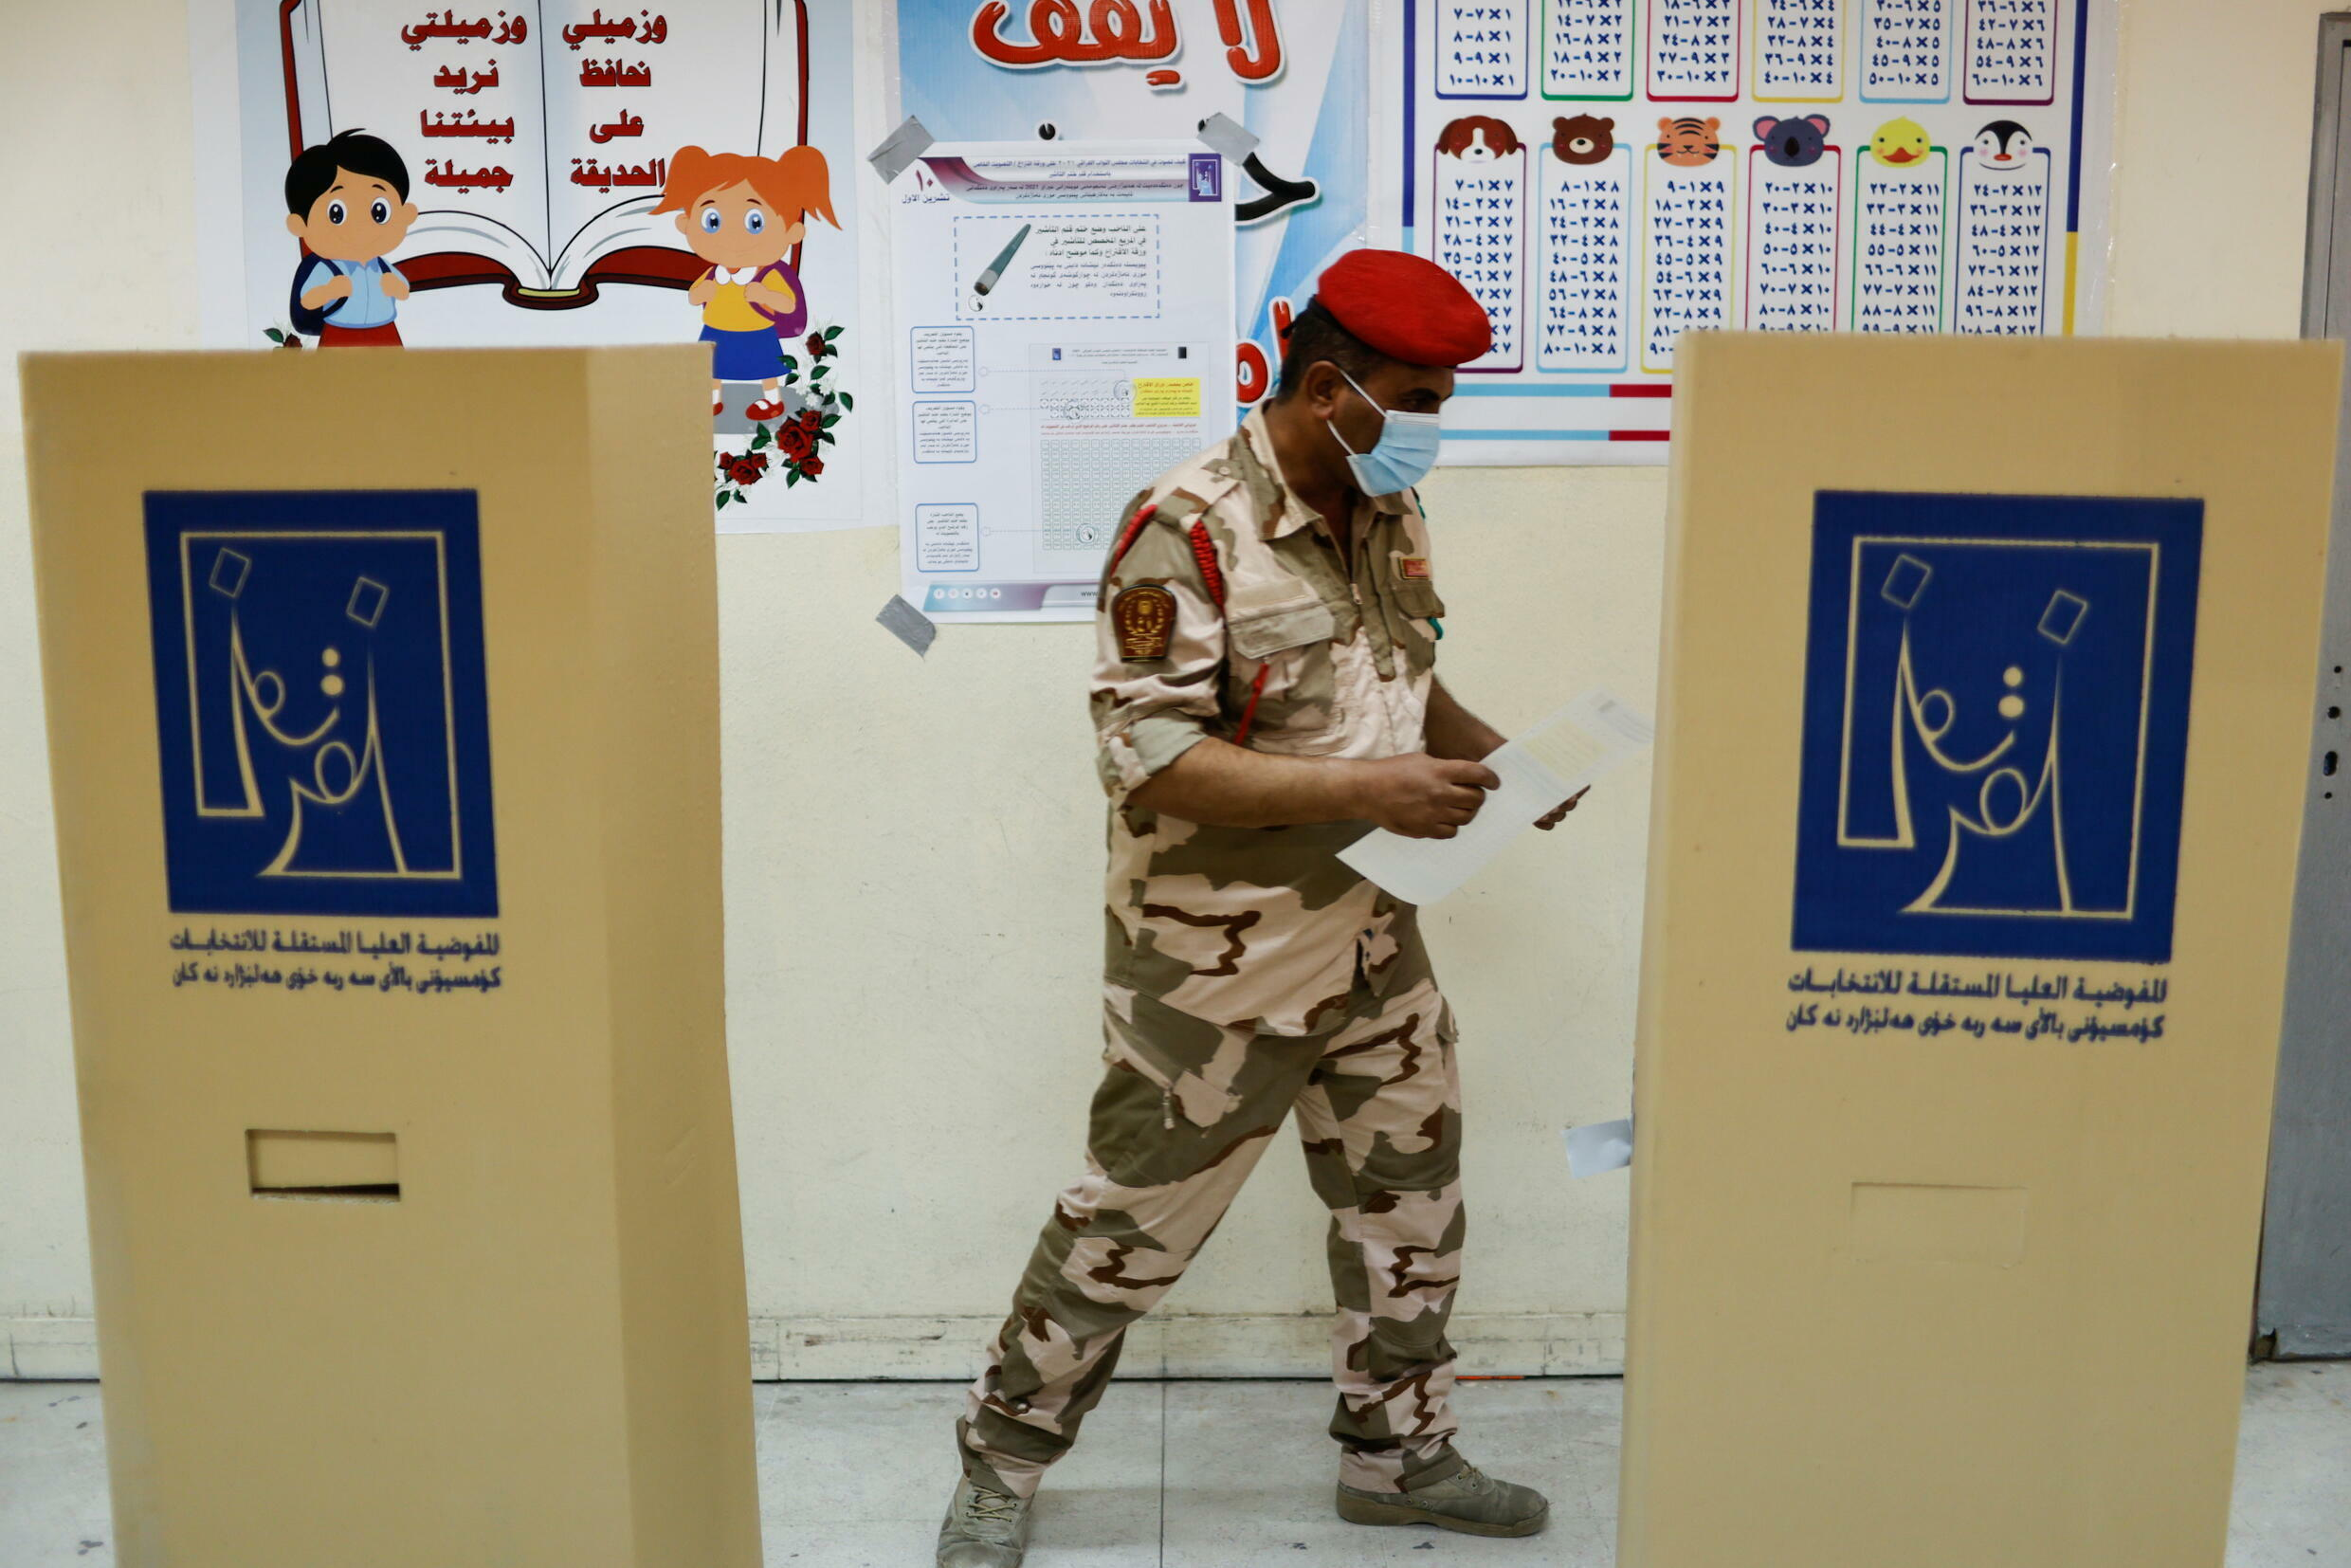 2021-10-08T072422Z_1077219043_RC2J5Q9VSWY9_RTRMADP_3_IRAQ-ELECTION-SPECIAL-VOTING